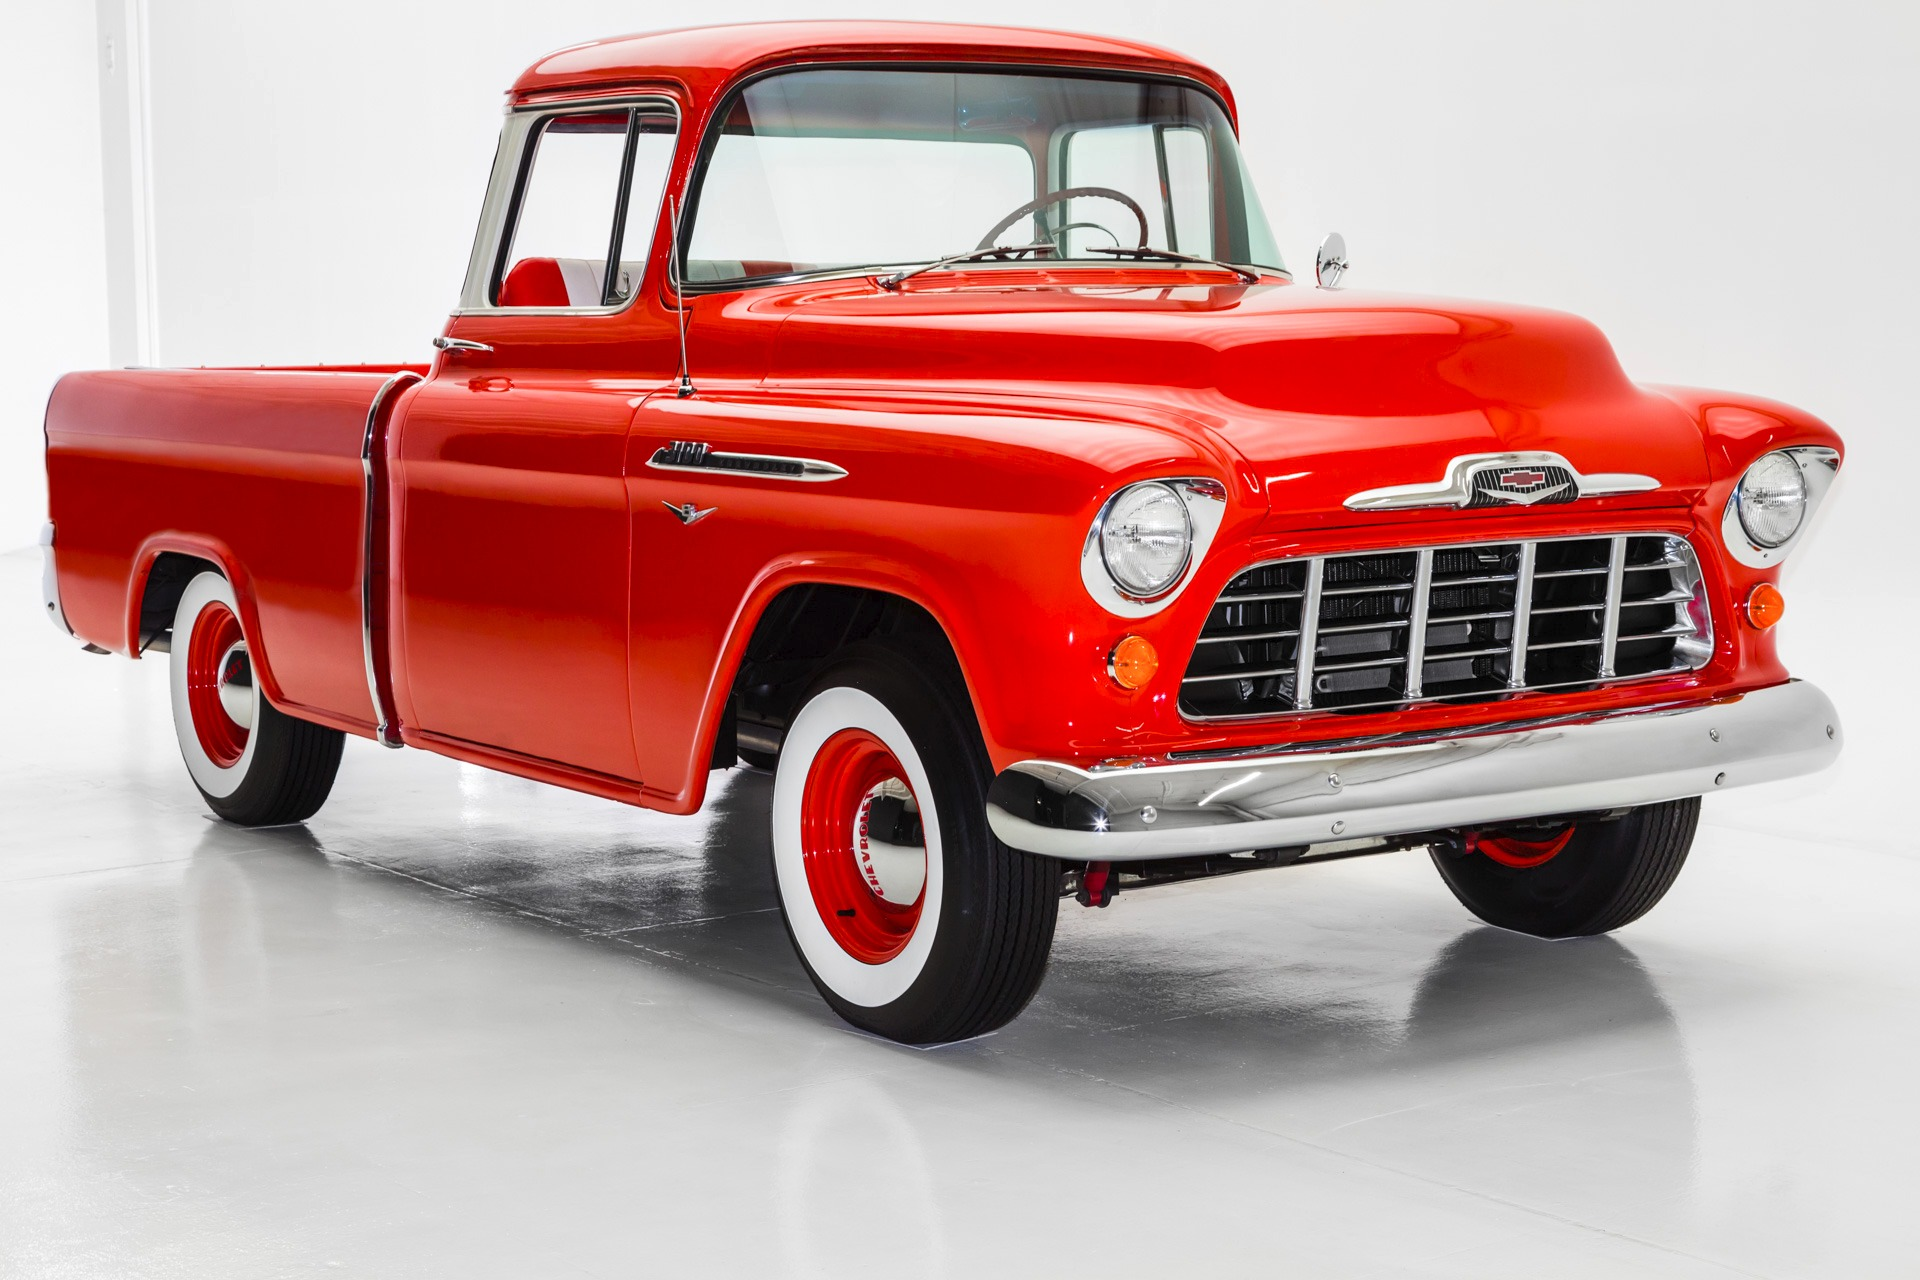 For Sale Used 1956 Chevrolet Pickup Cameo, V8 Auto, Frame Off | American Dream Machines Des Moines IA 50309